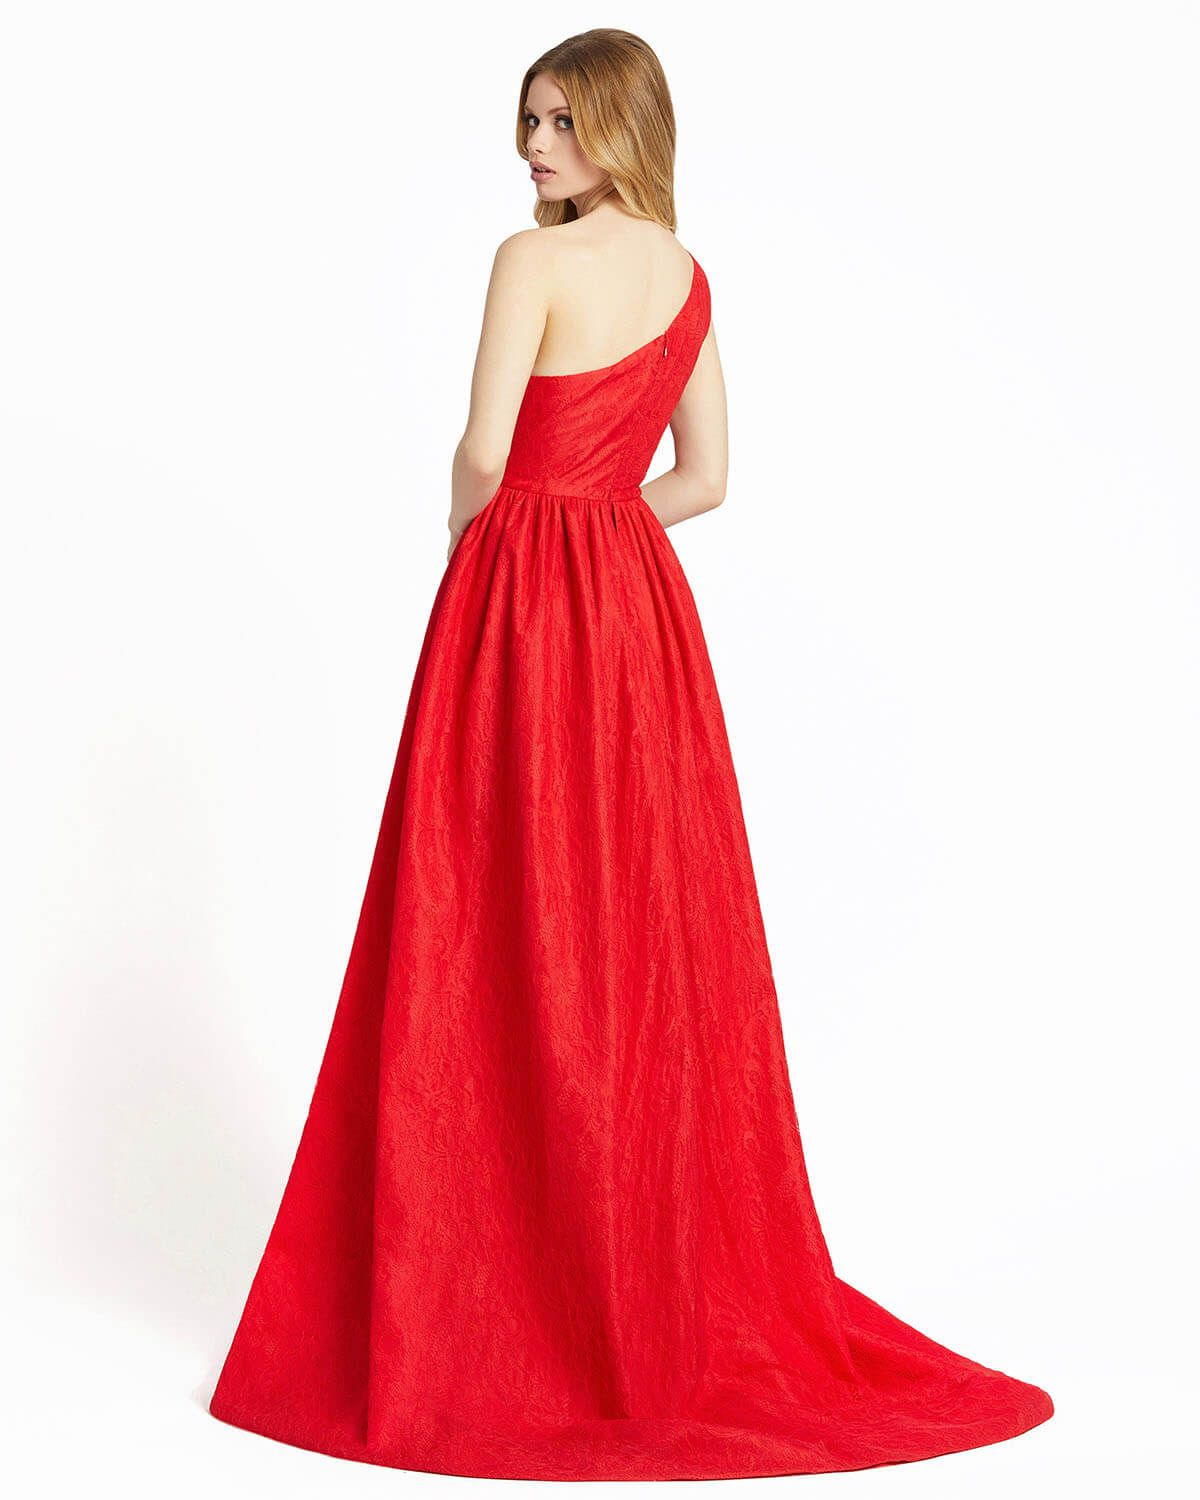 Style 12363 Mac Duggal Red Size 6 One Shoulder Prom Ball gown on Queenly